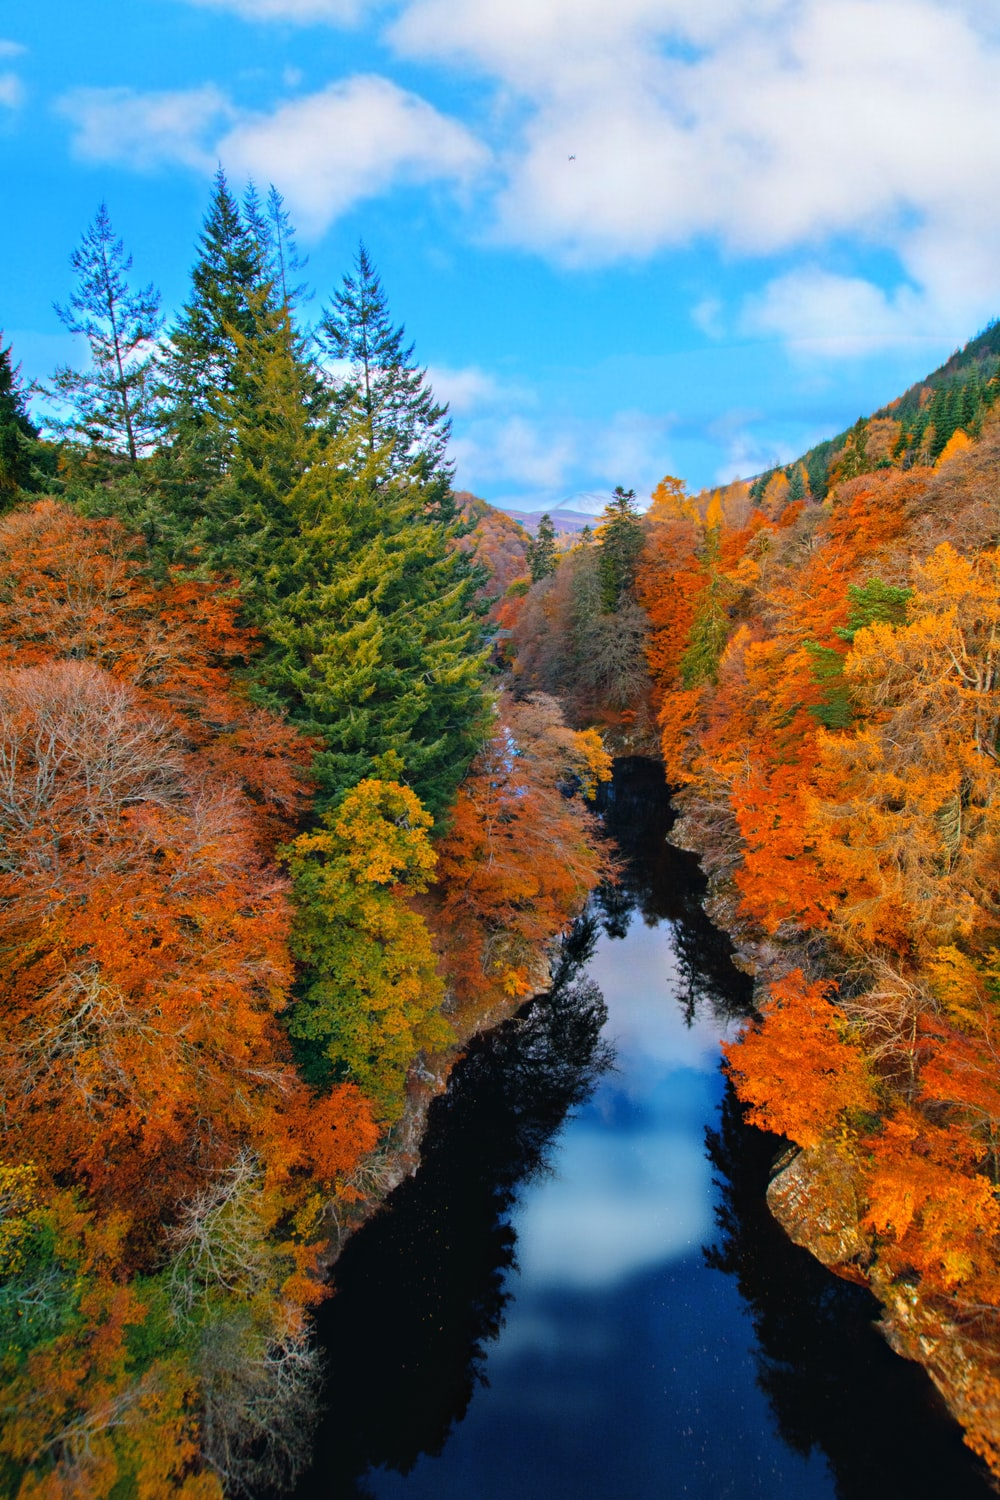 green and brown trees beside river under blue sky during daytime